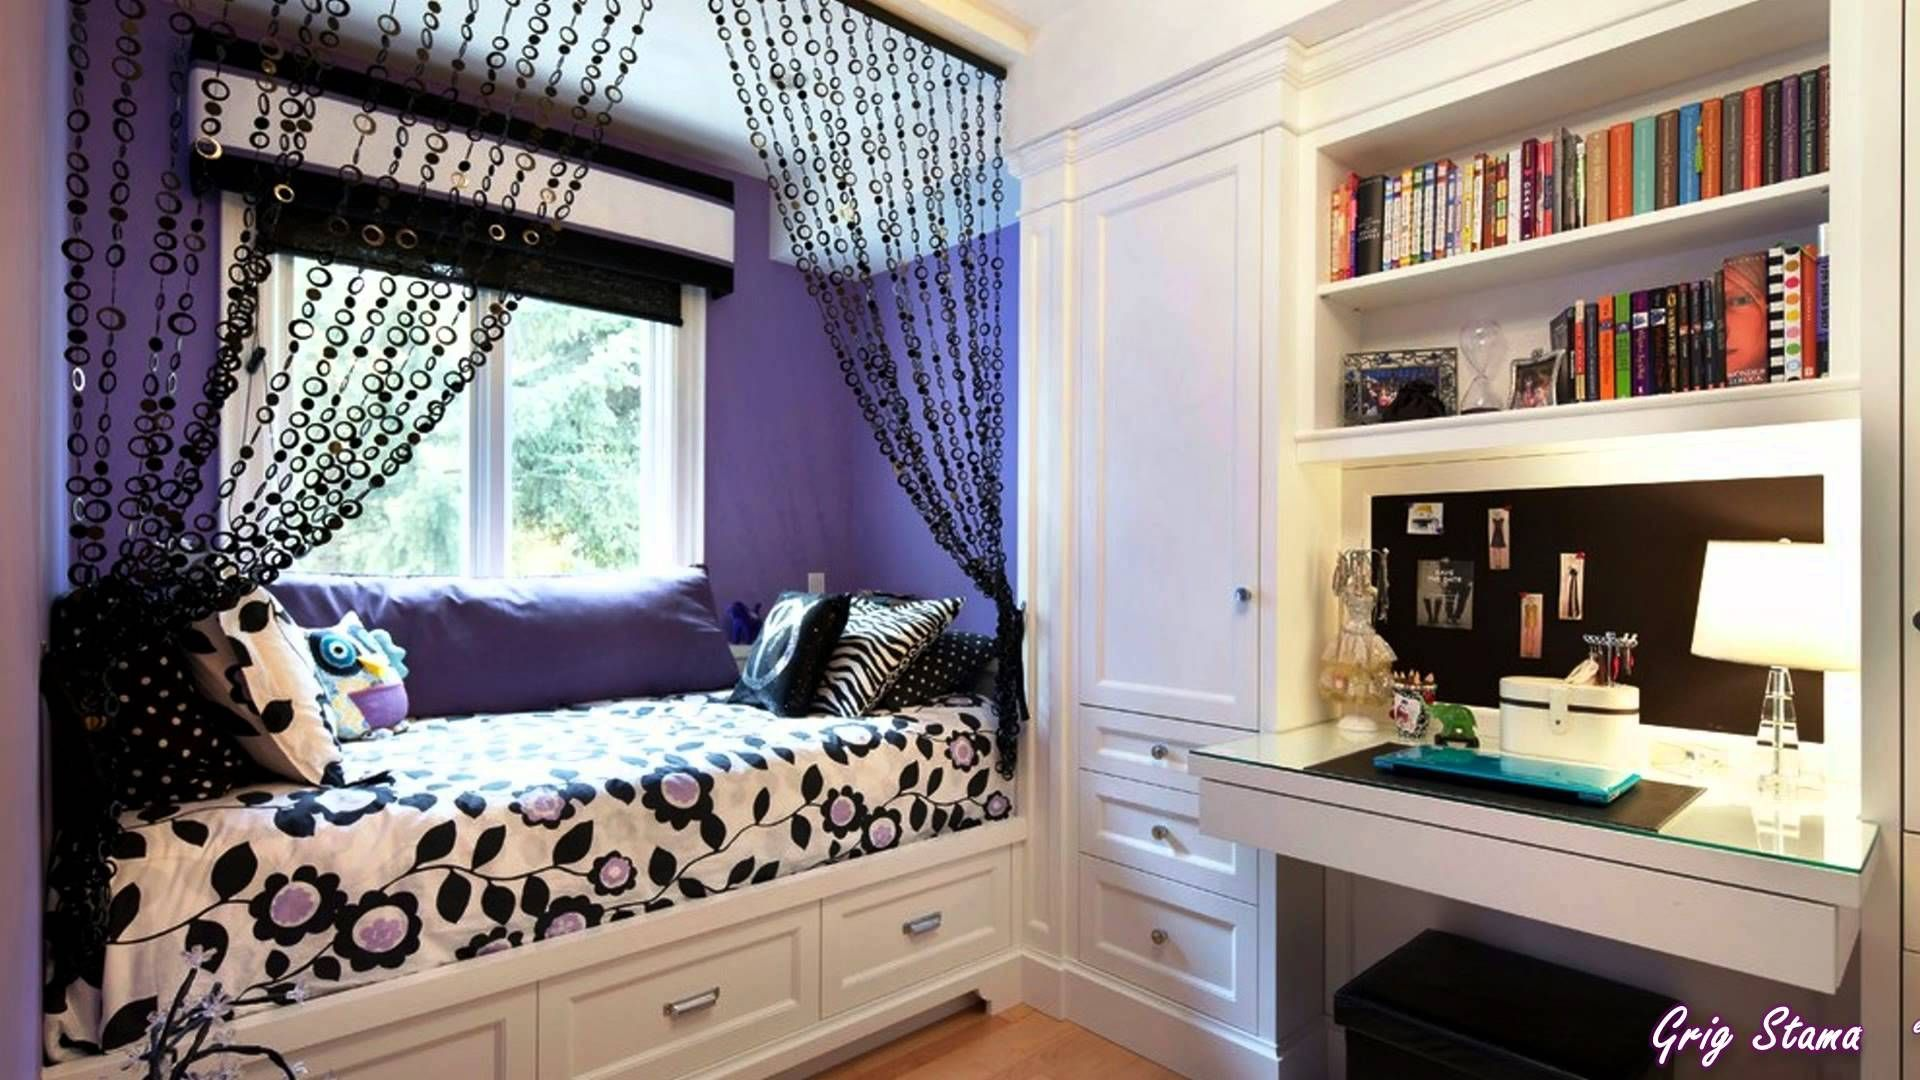 Simple bedroom design ideas for teenage girls - Bedroom Ideas For Teenage Girls Tumblr Simple Cosmoplast Biz